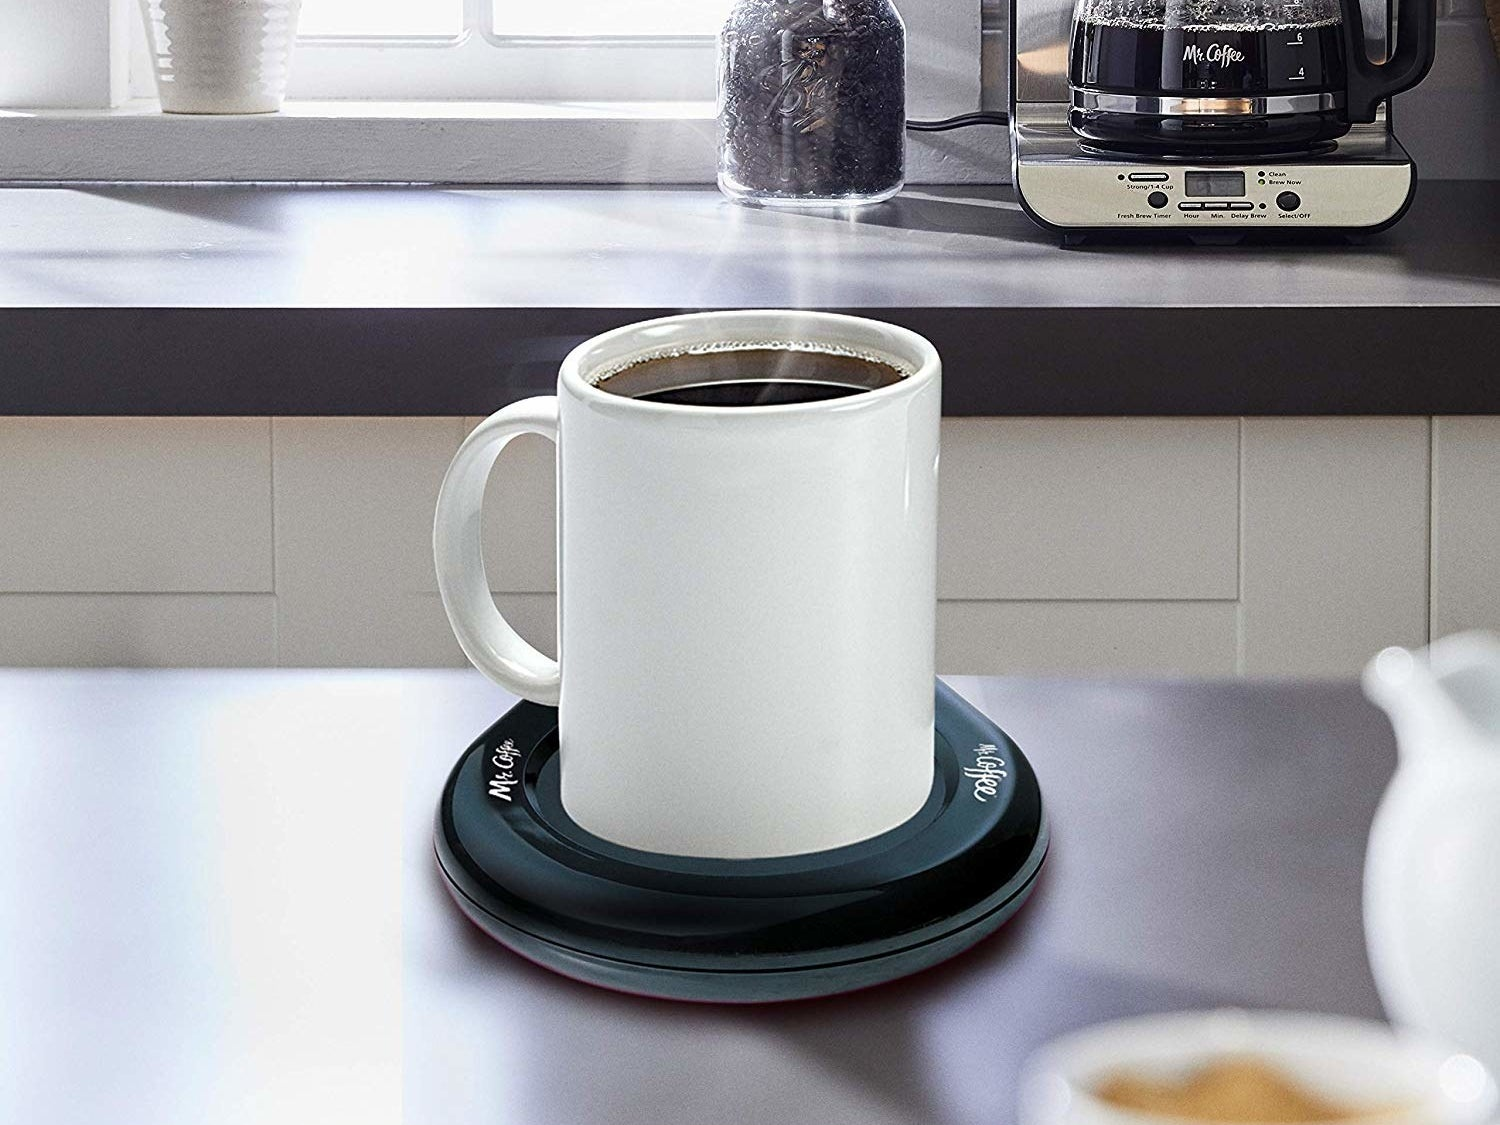 A mug filled with coffee placed on the warmer